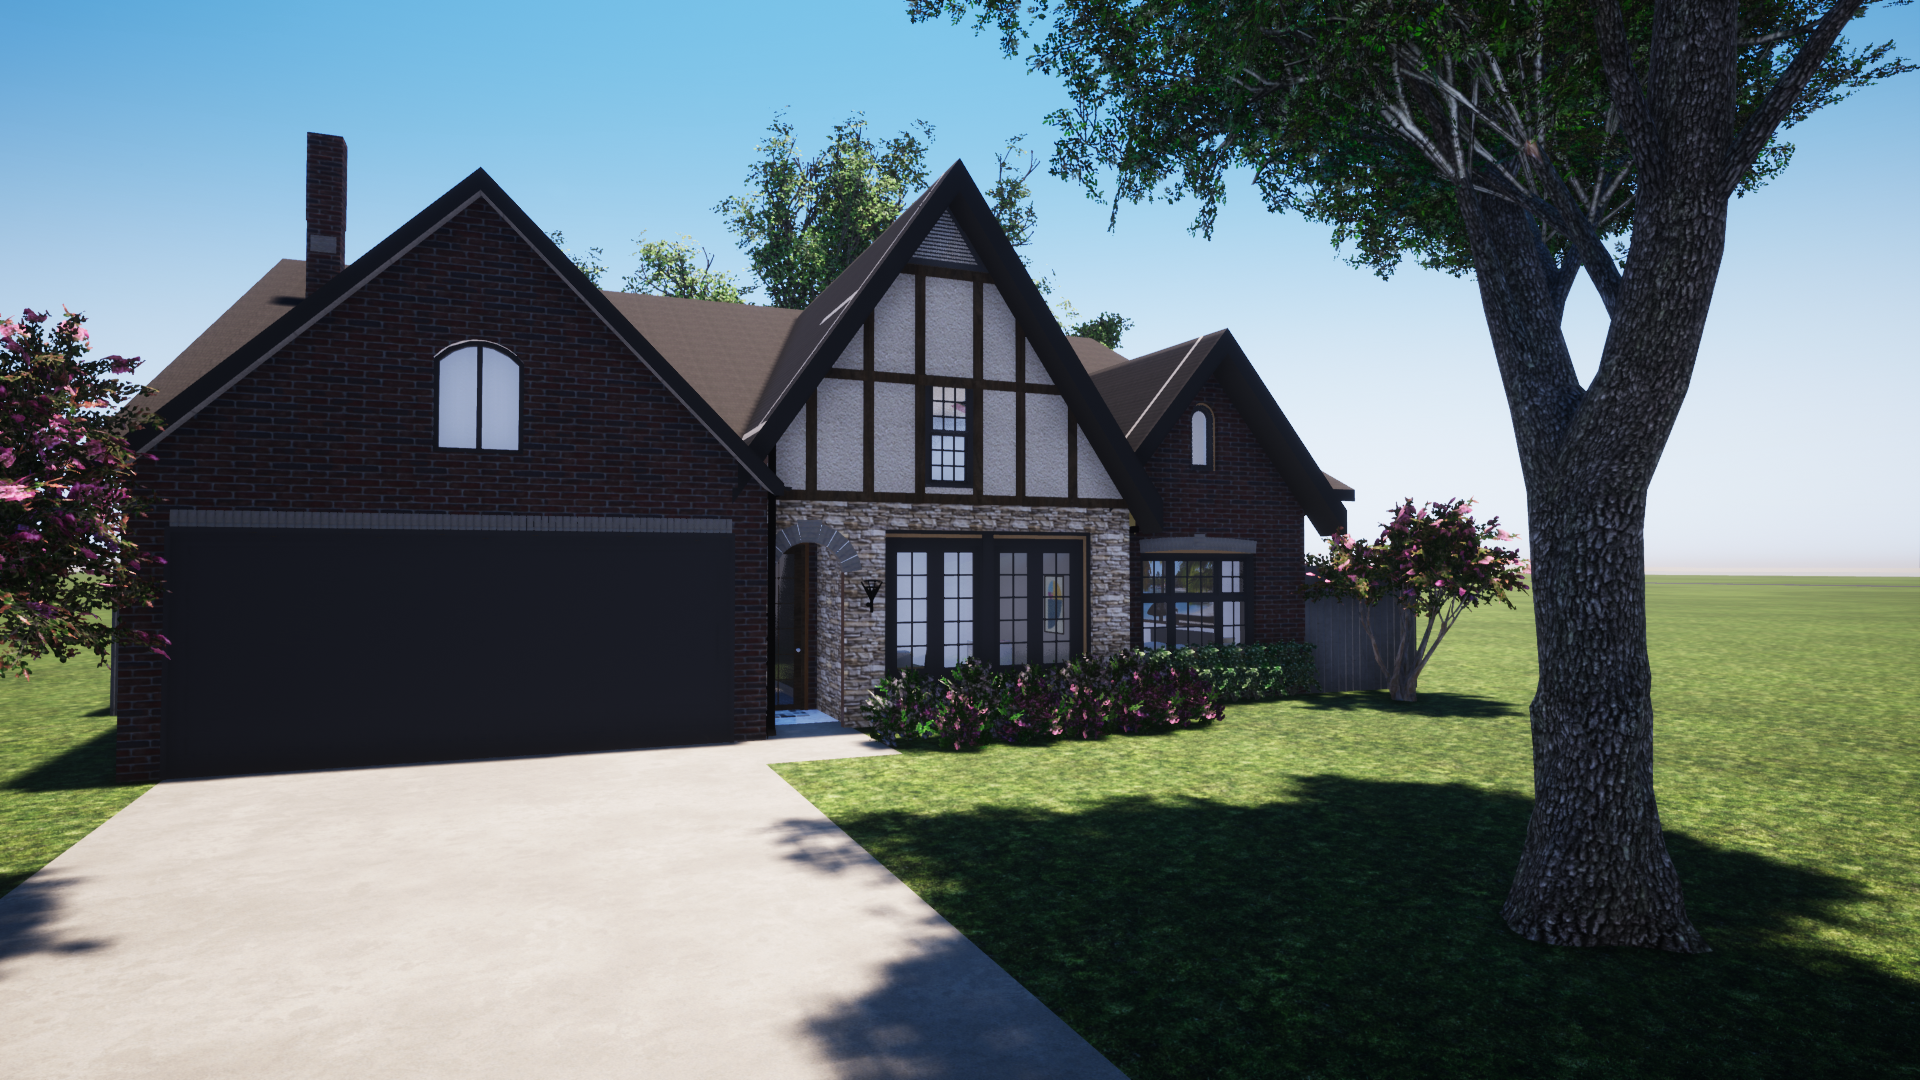 This is the final design we ended up designing for their replacement house! Full on Tudor!